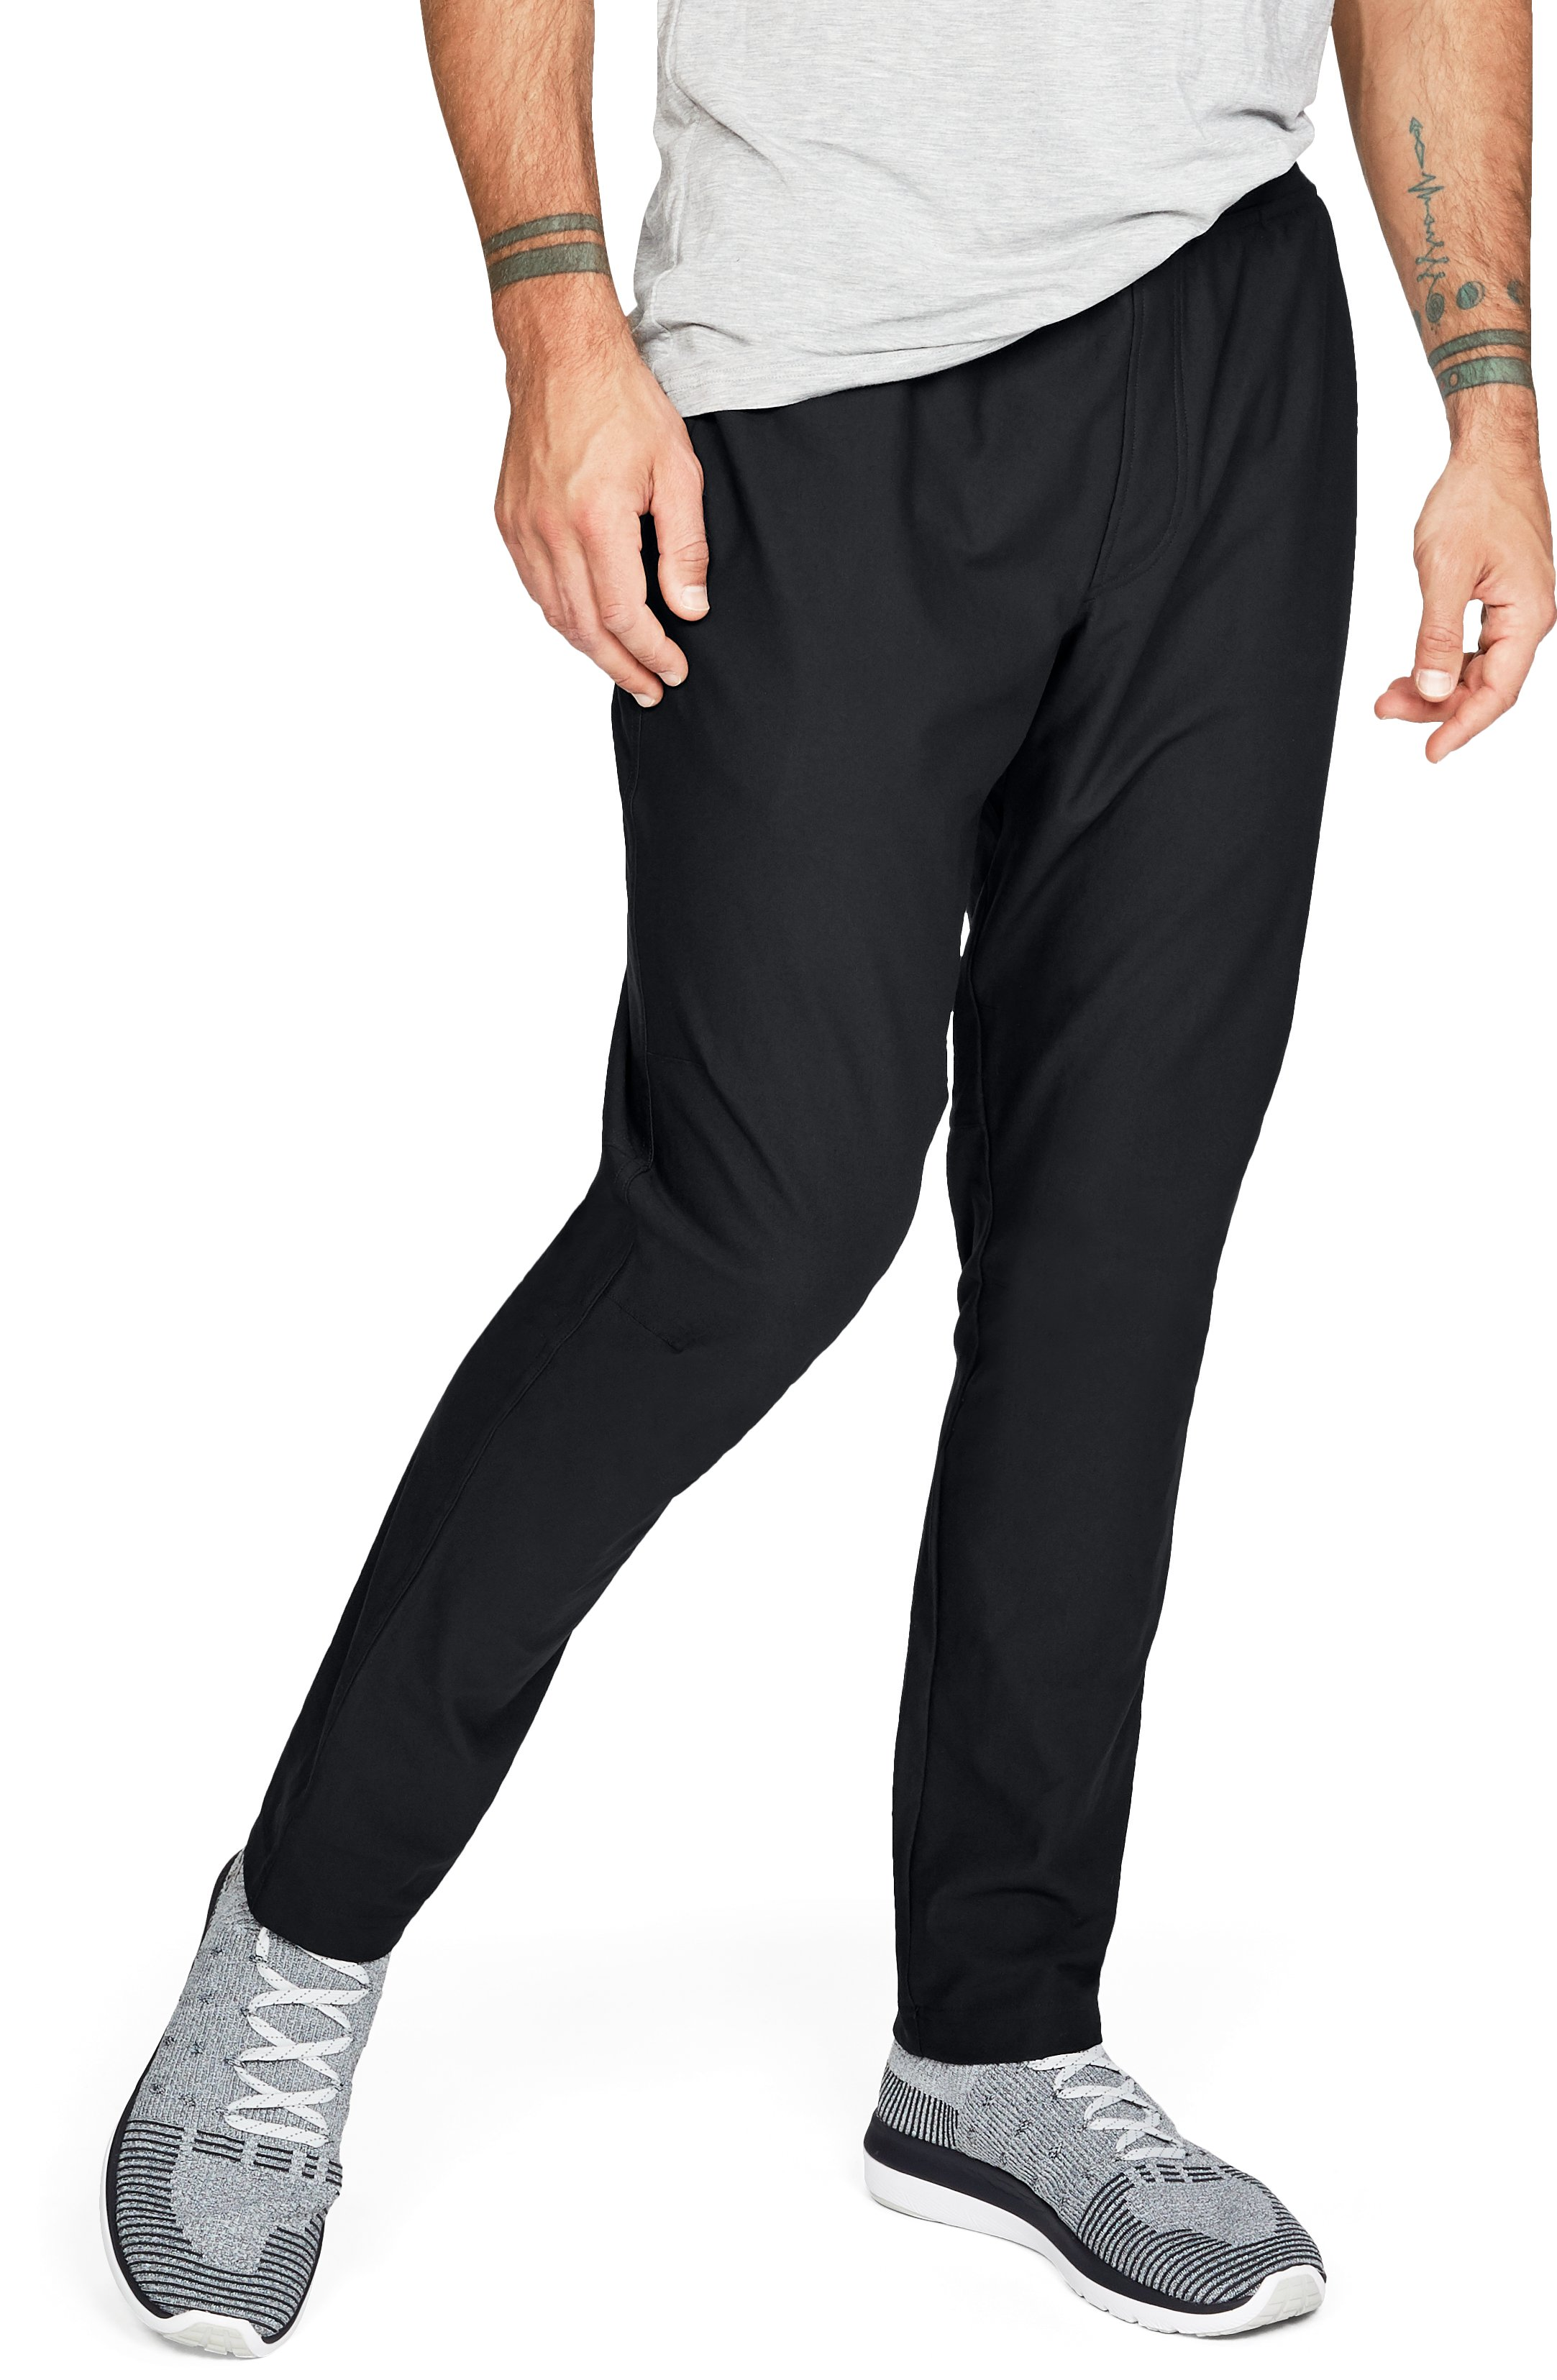 black track pants Men's Athlete Recovery Track Pants